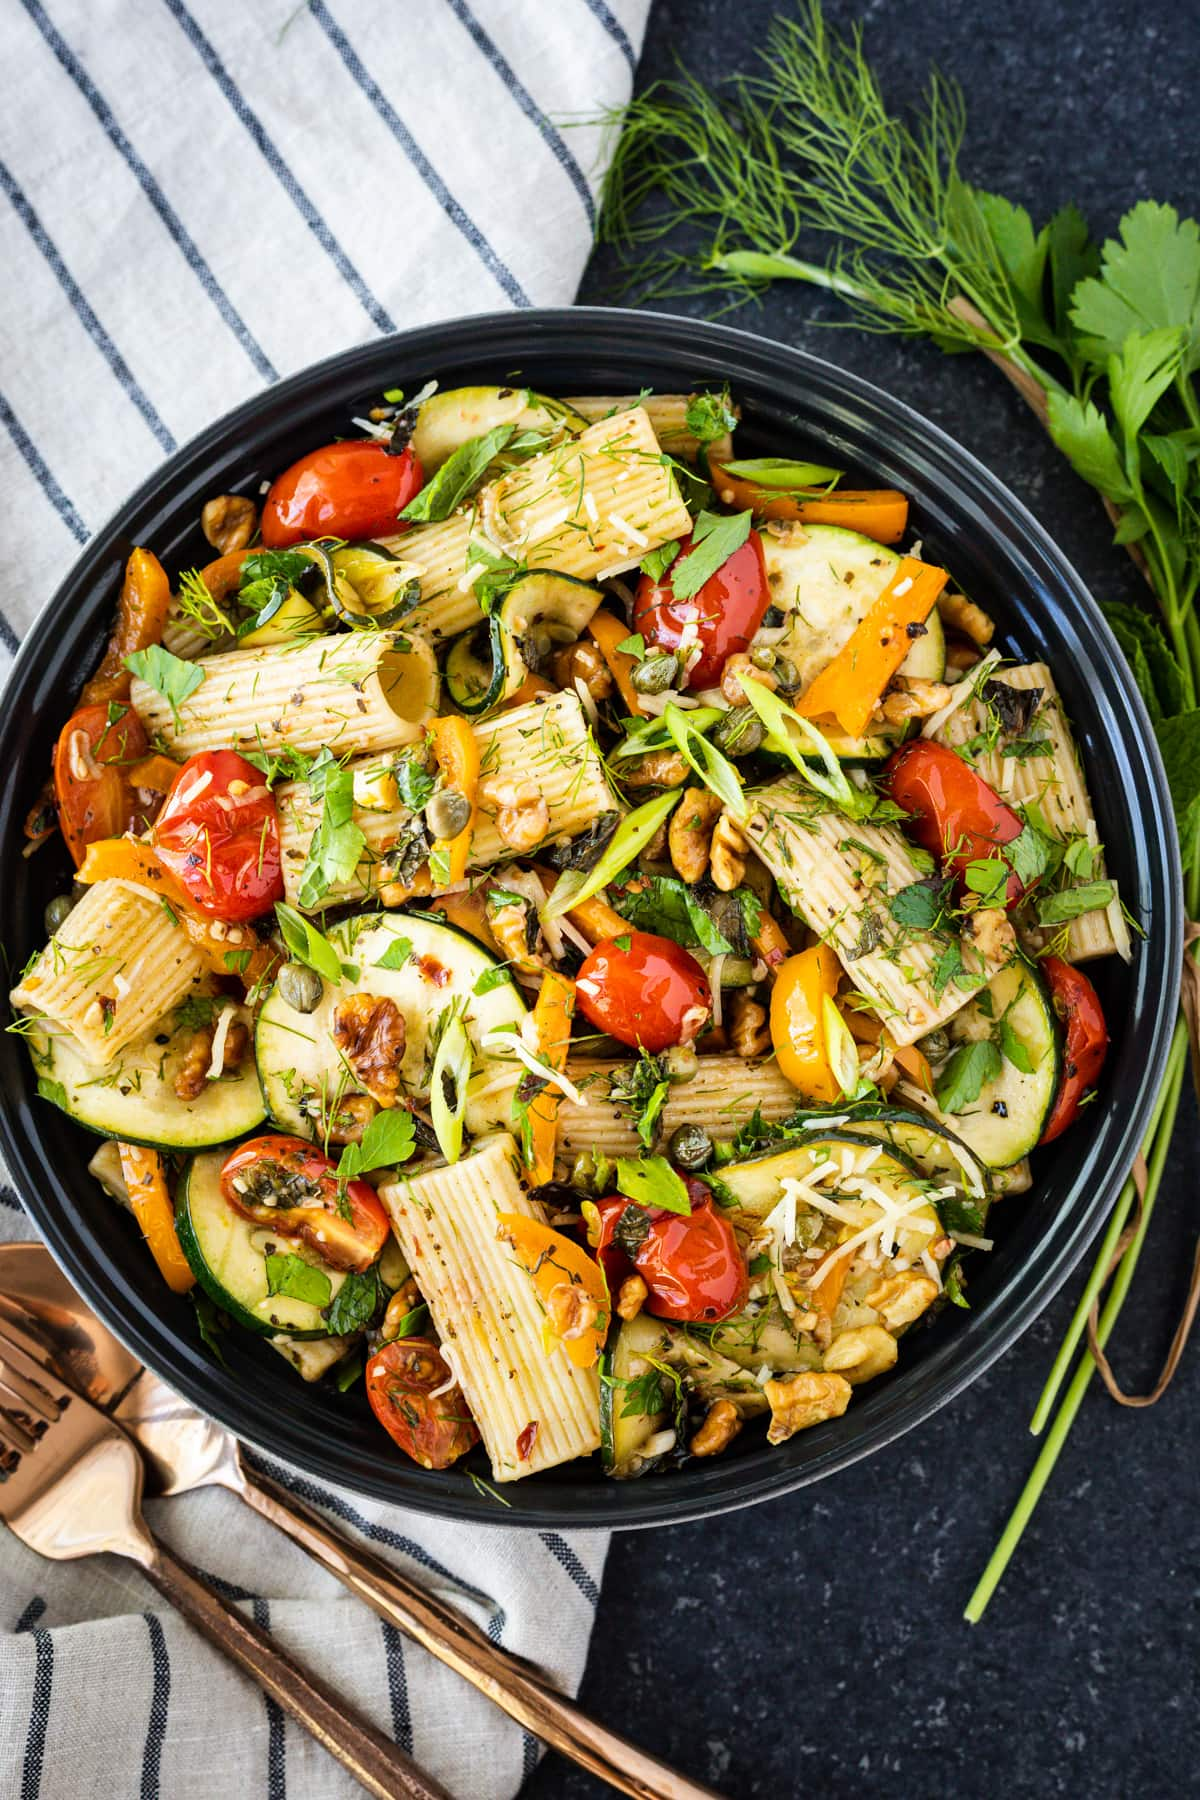 bowl of pasta salad garnished with fresh herbs